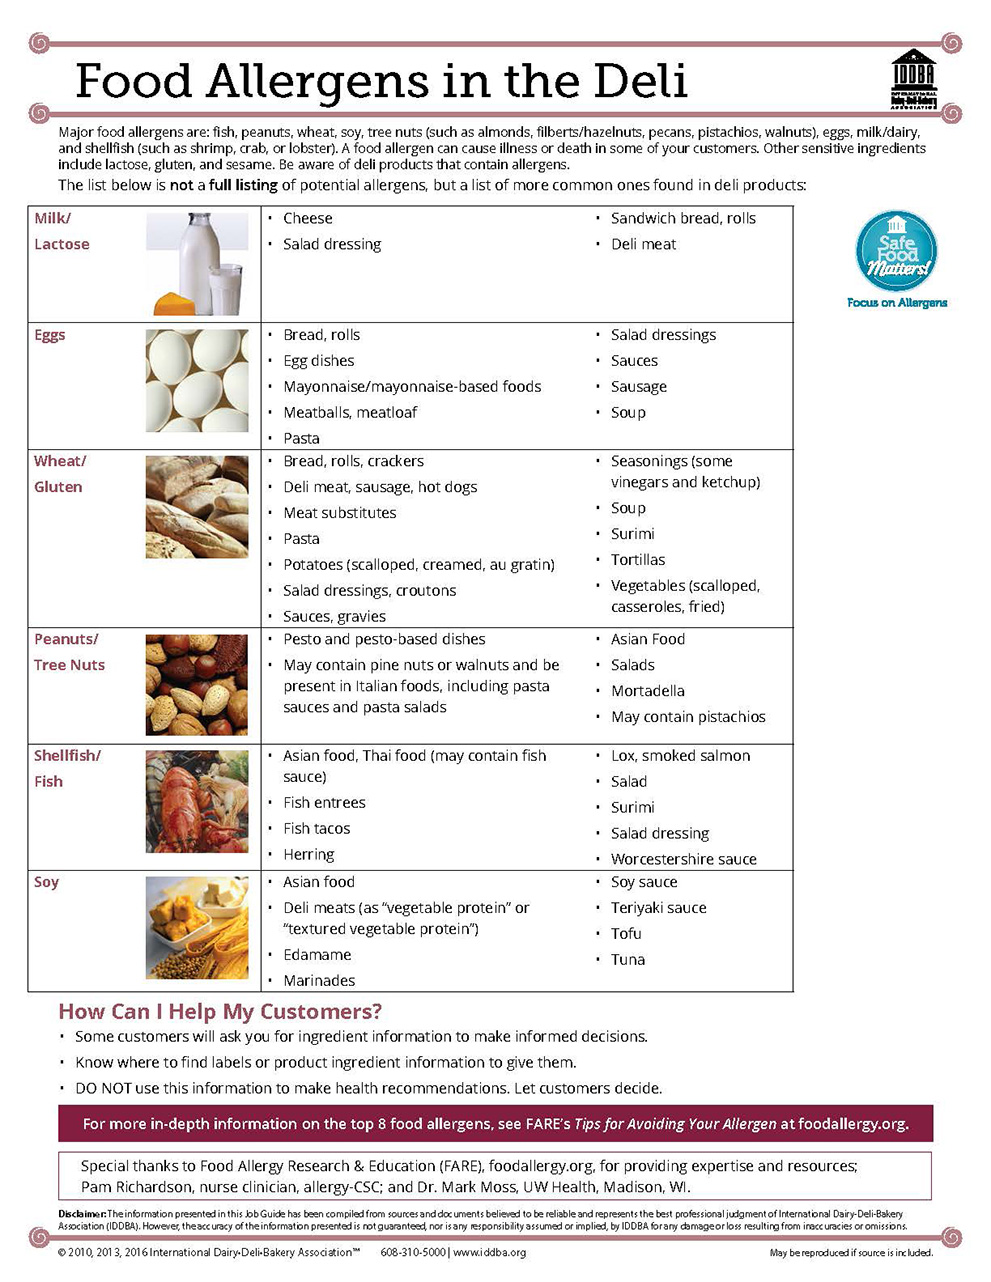 Food Allergens in the Deli